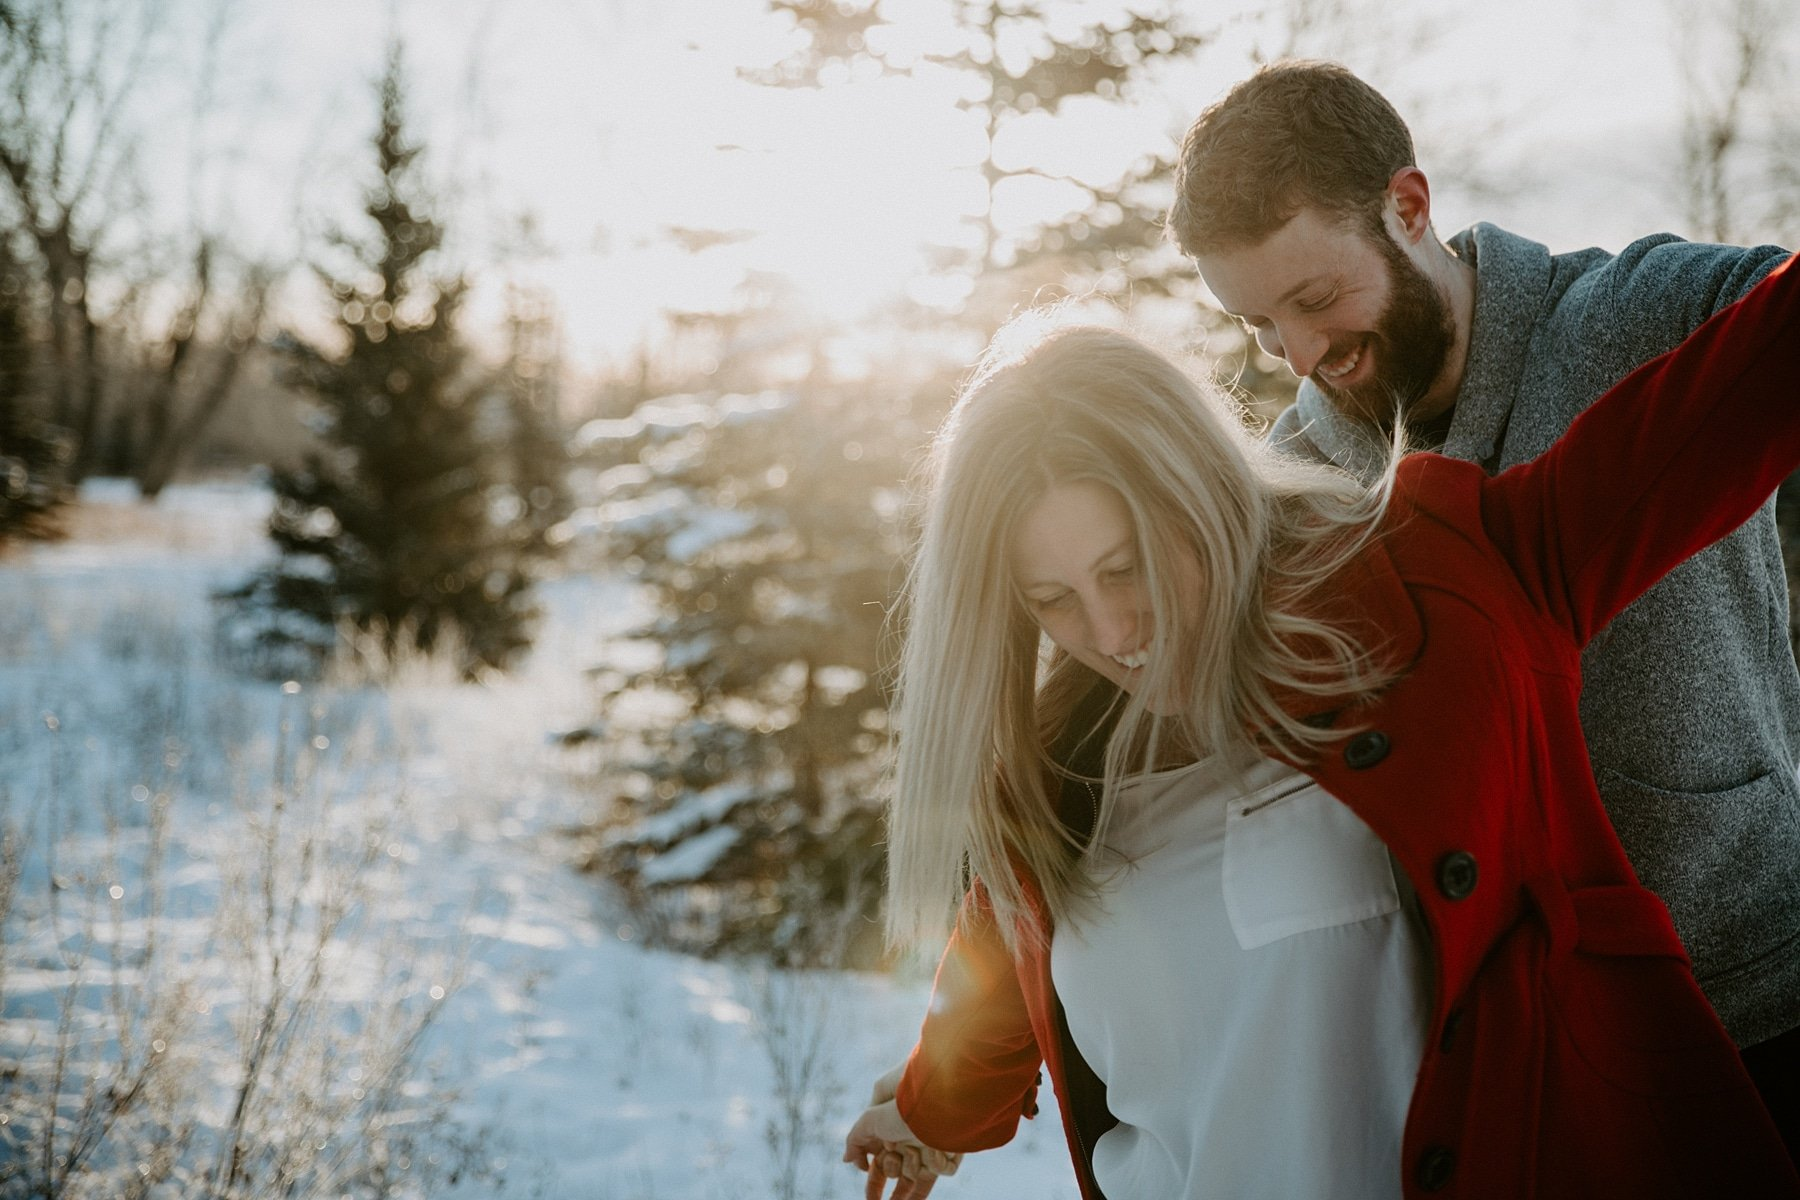 Winter Fish Creek Park Engagement Session in Calgary by Teller of Tales Photography